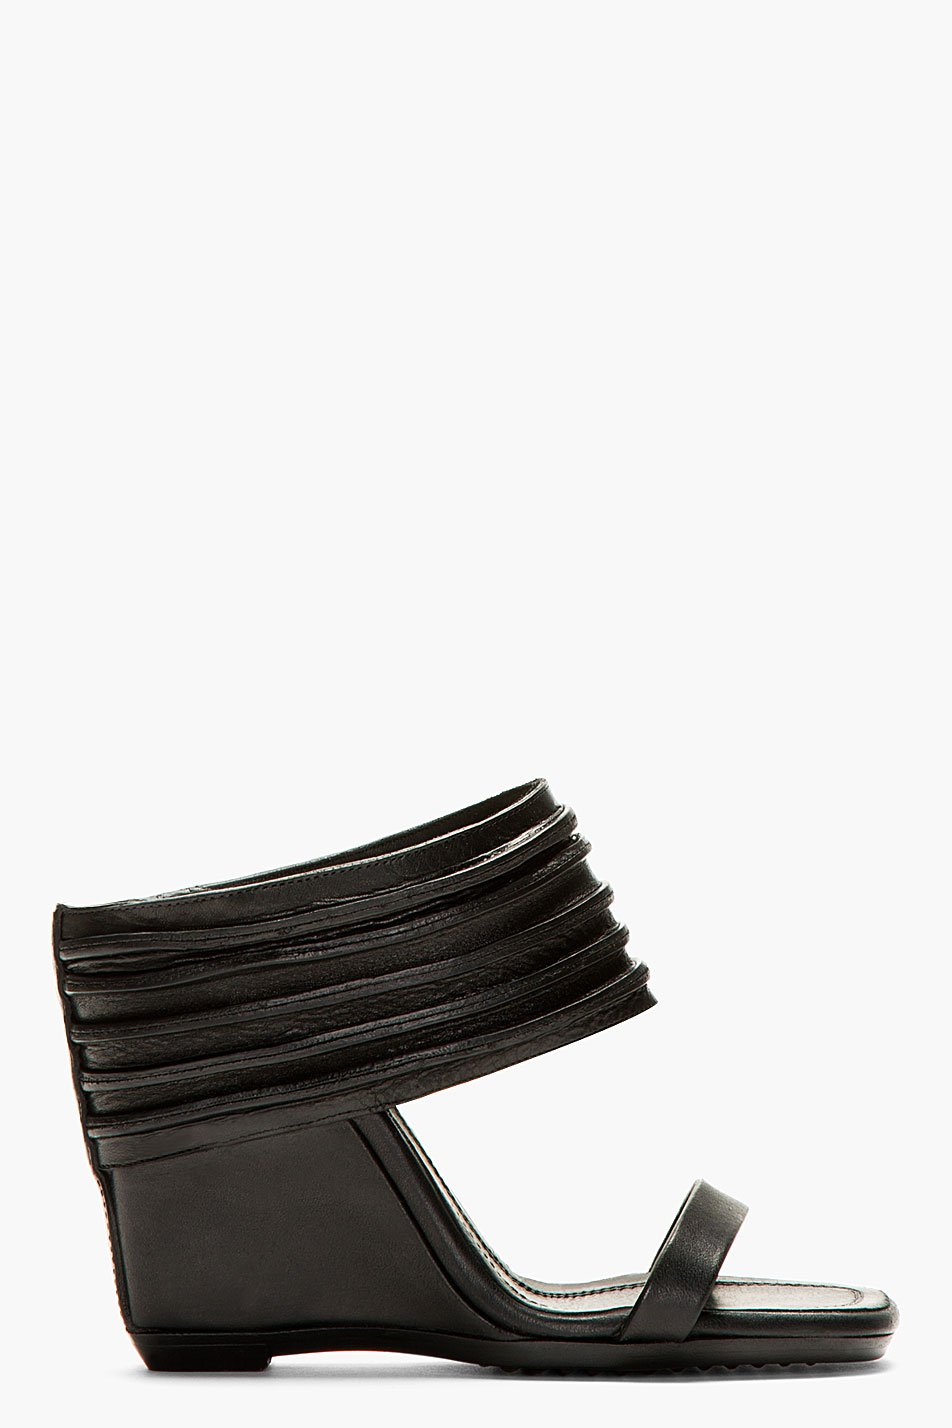 Rick owens black ribbed leather ruhlmann wedge sandals